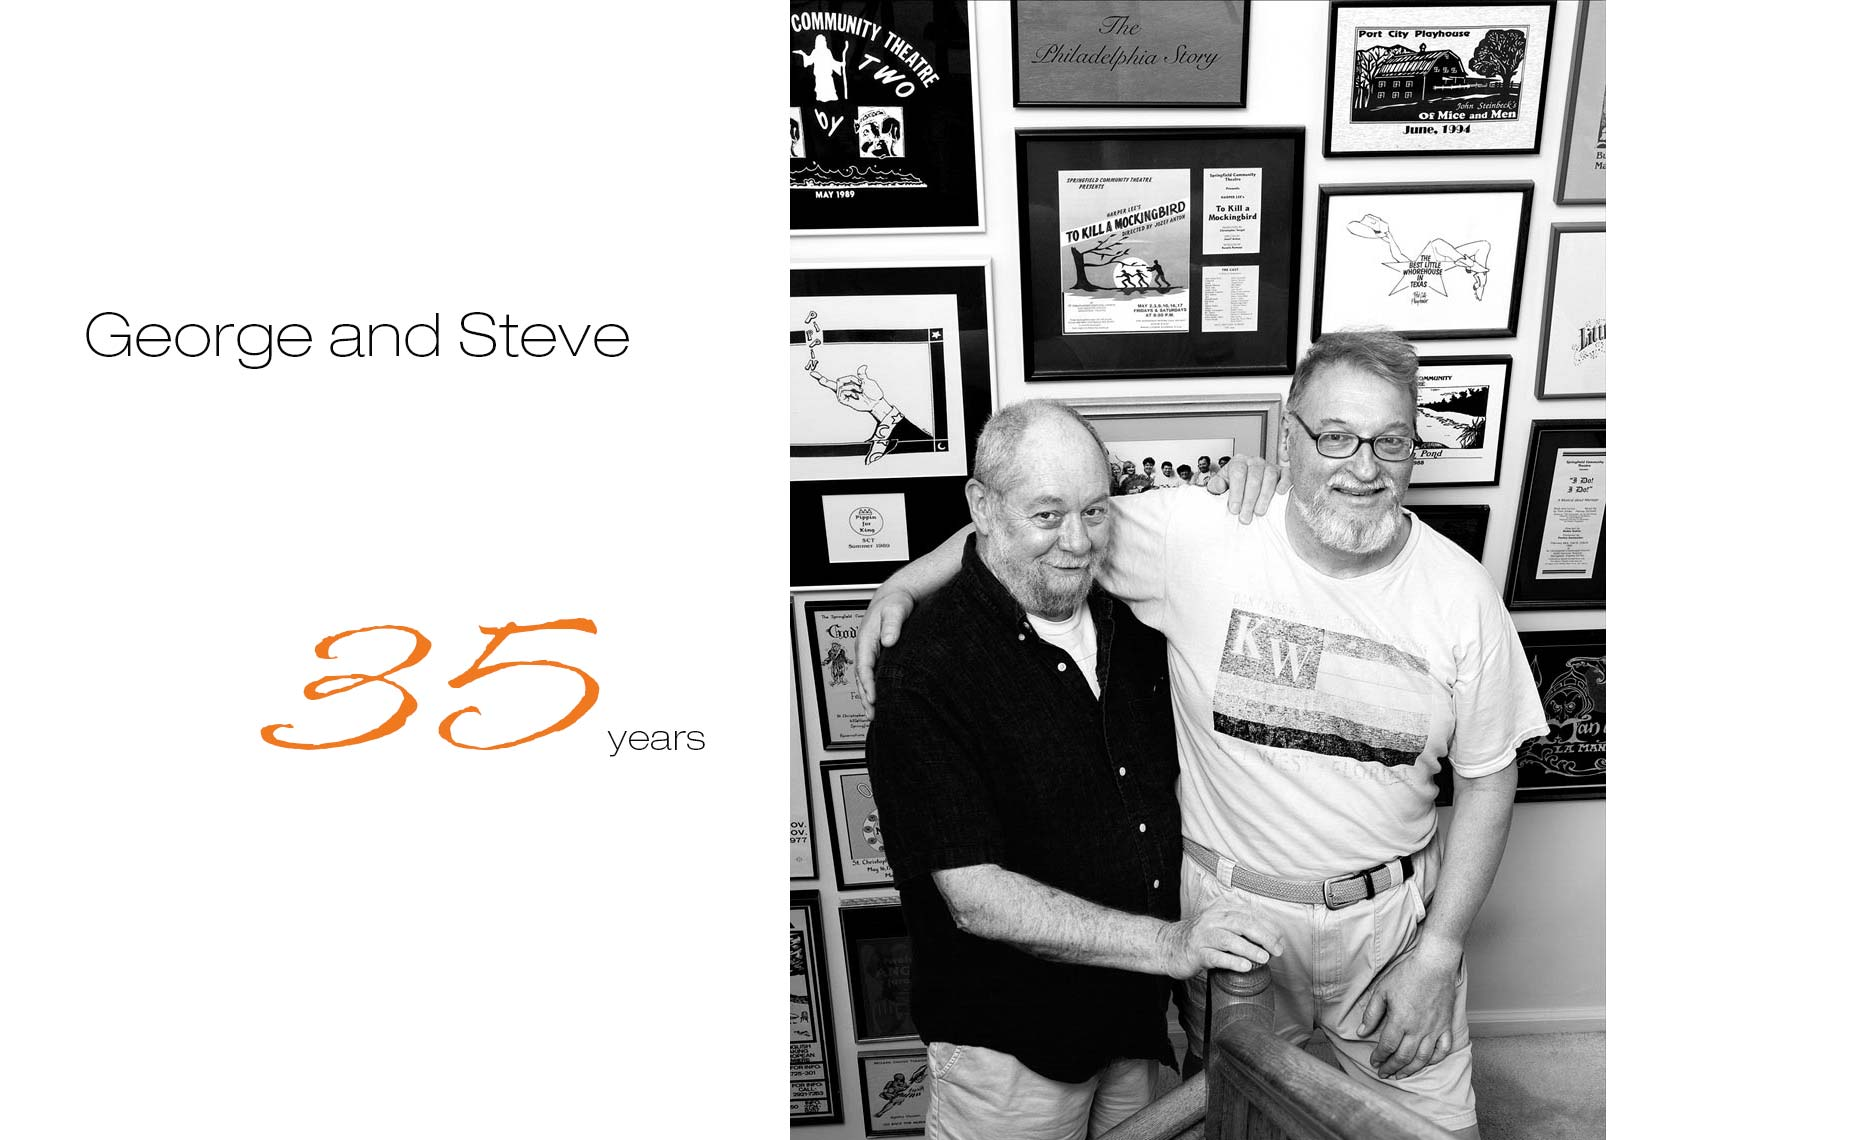 GeorgeandSteve_35yrs